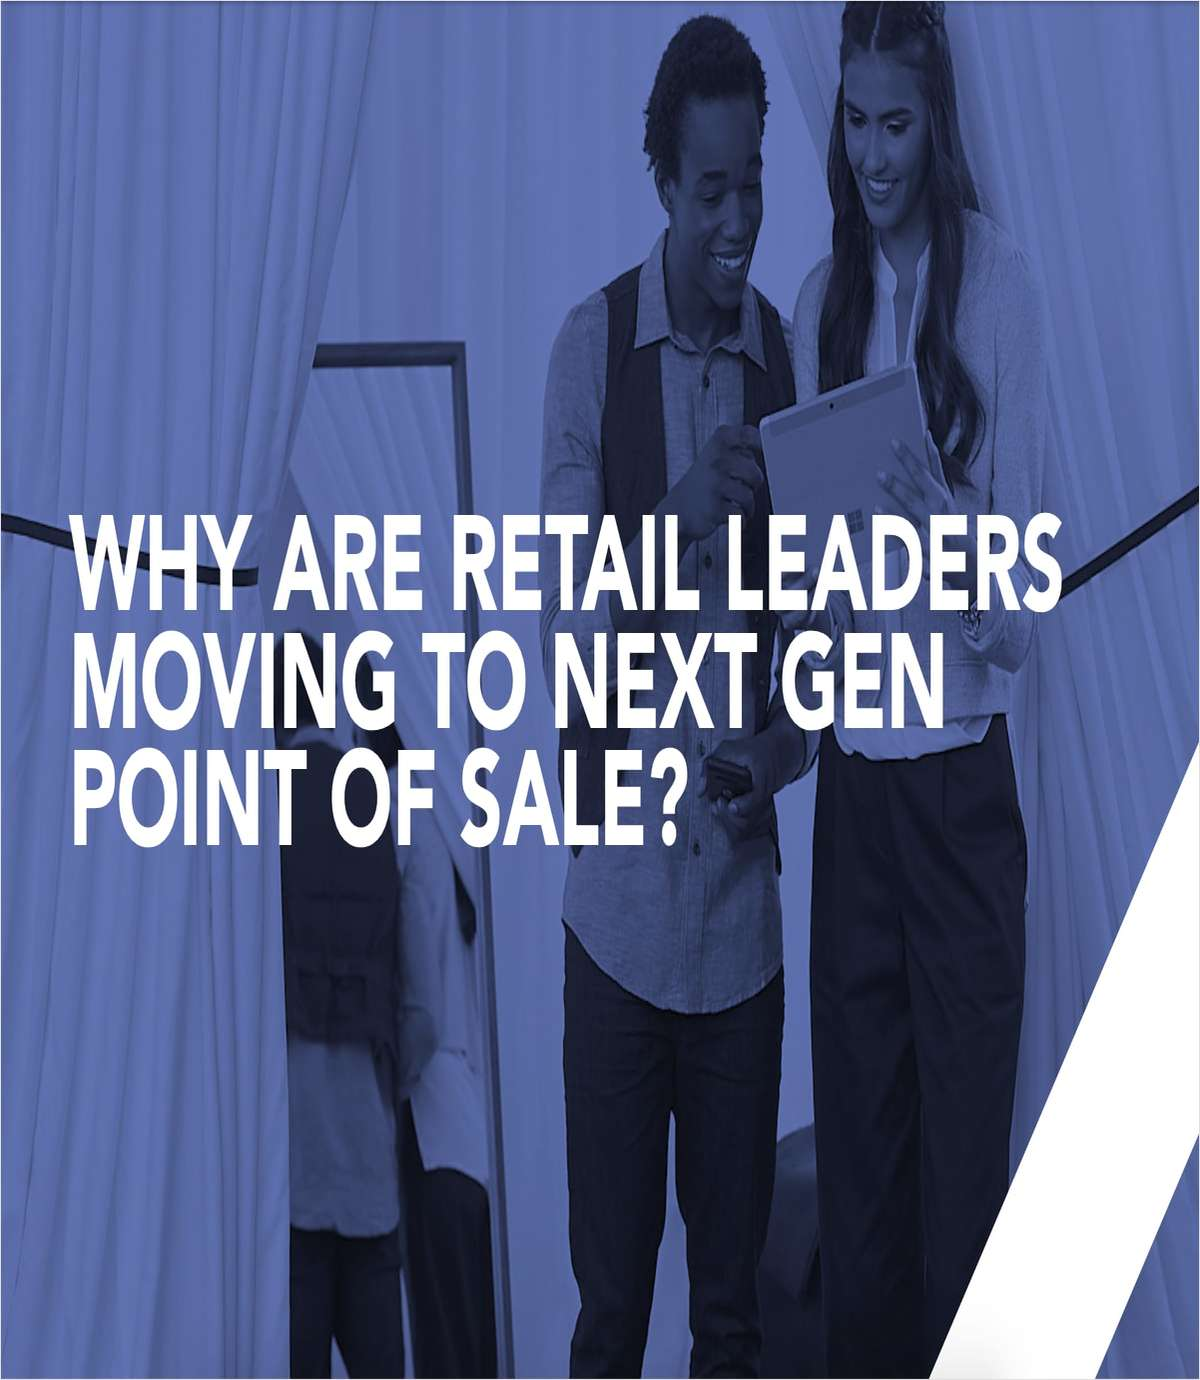 Why Retail Leaders Are Moving to Next Generation Point of Sale